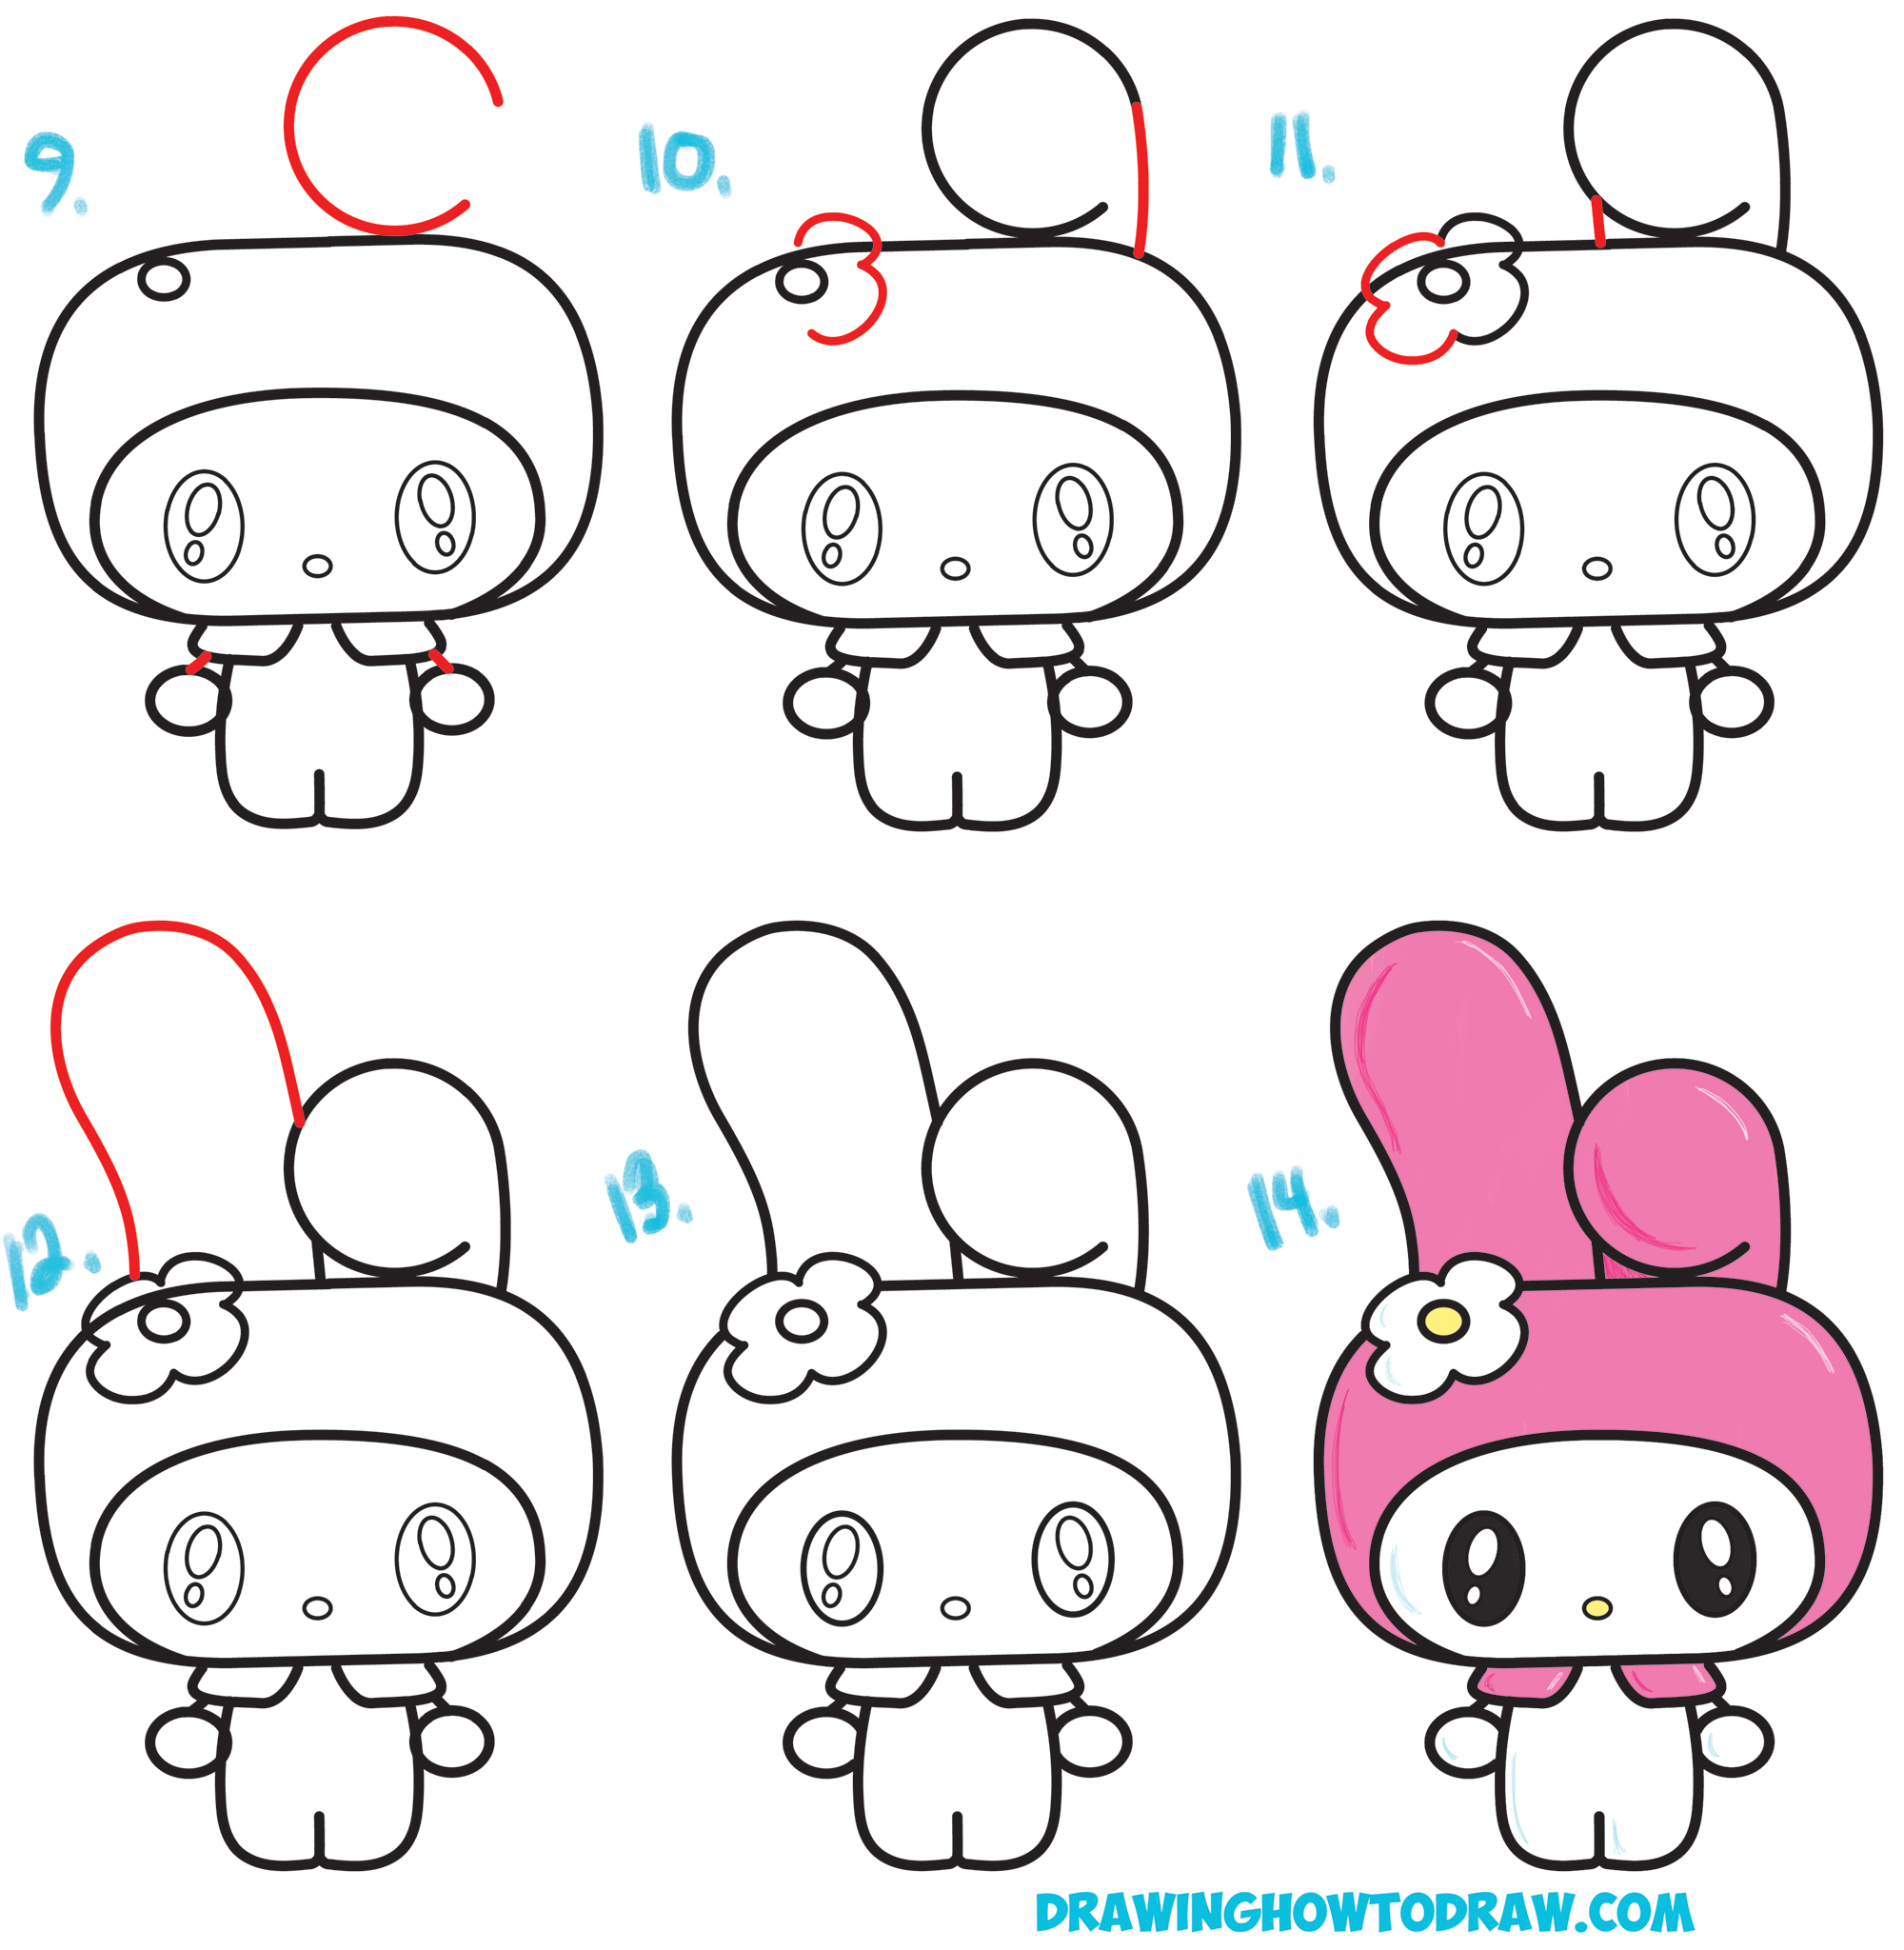 2000x2048 How to Draw Kawaii Chibi My Melody from Hello Kitty A Cute